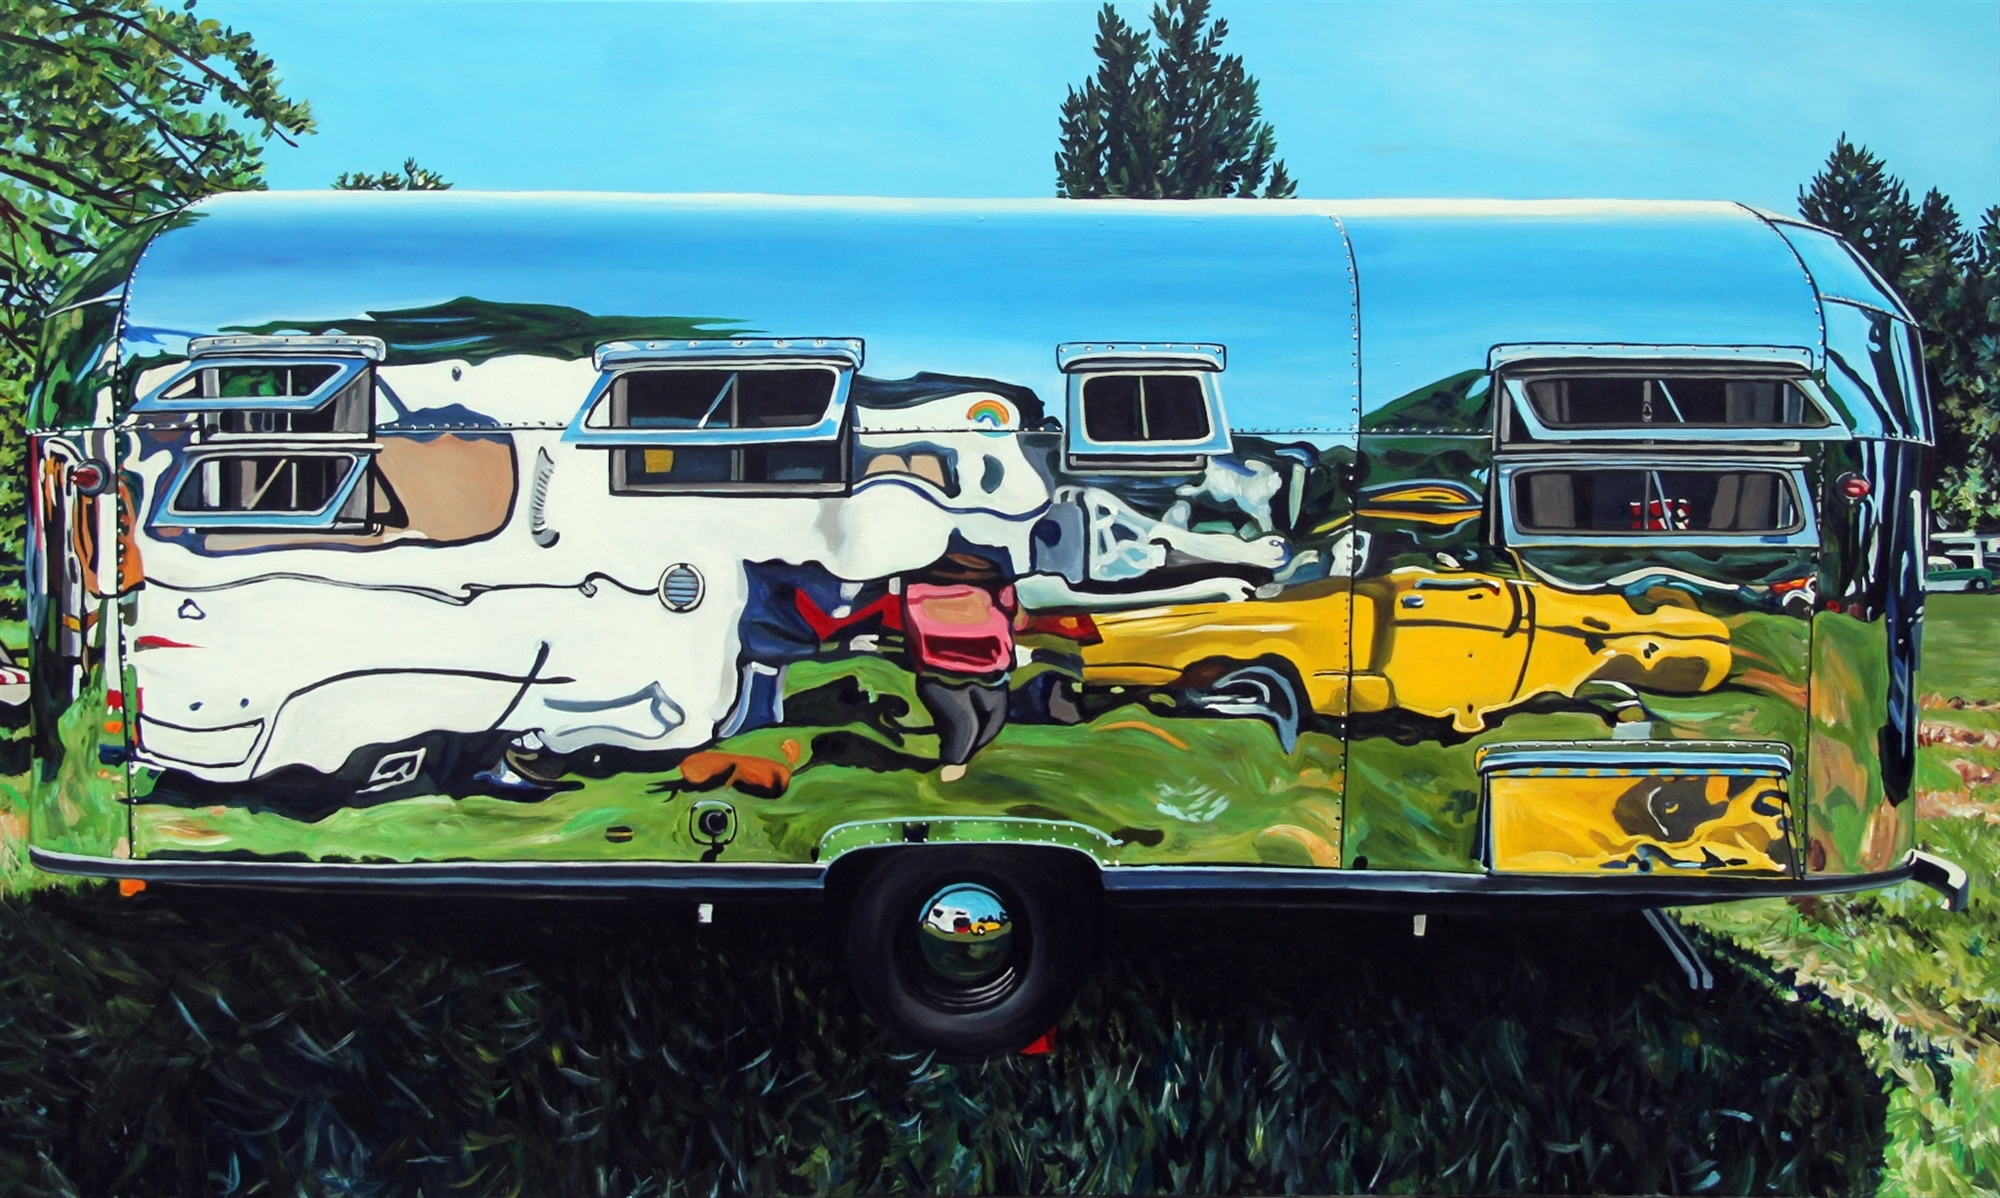 Airlight Trailer with Yellow Reflection by Taralee Guild